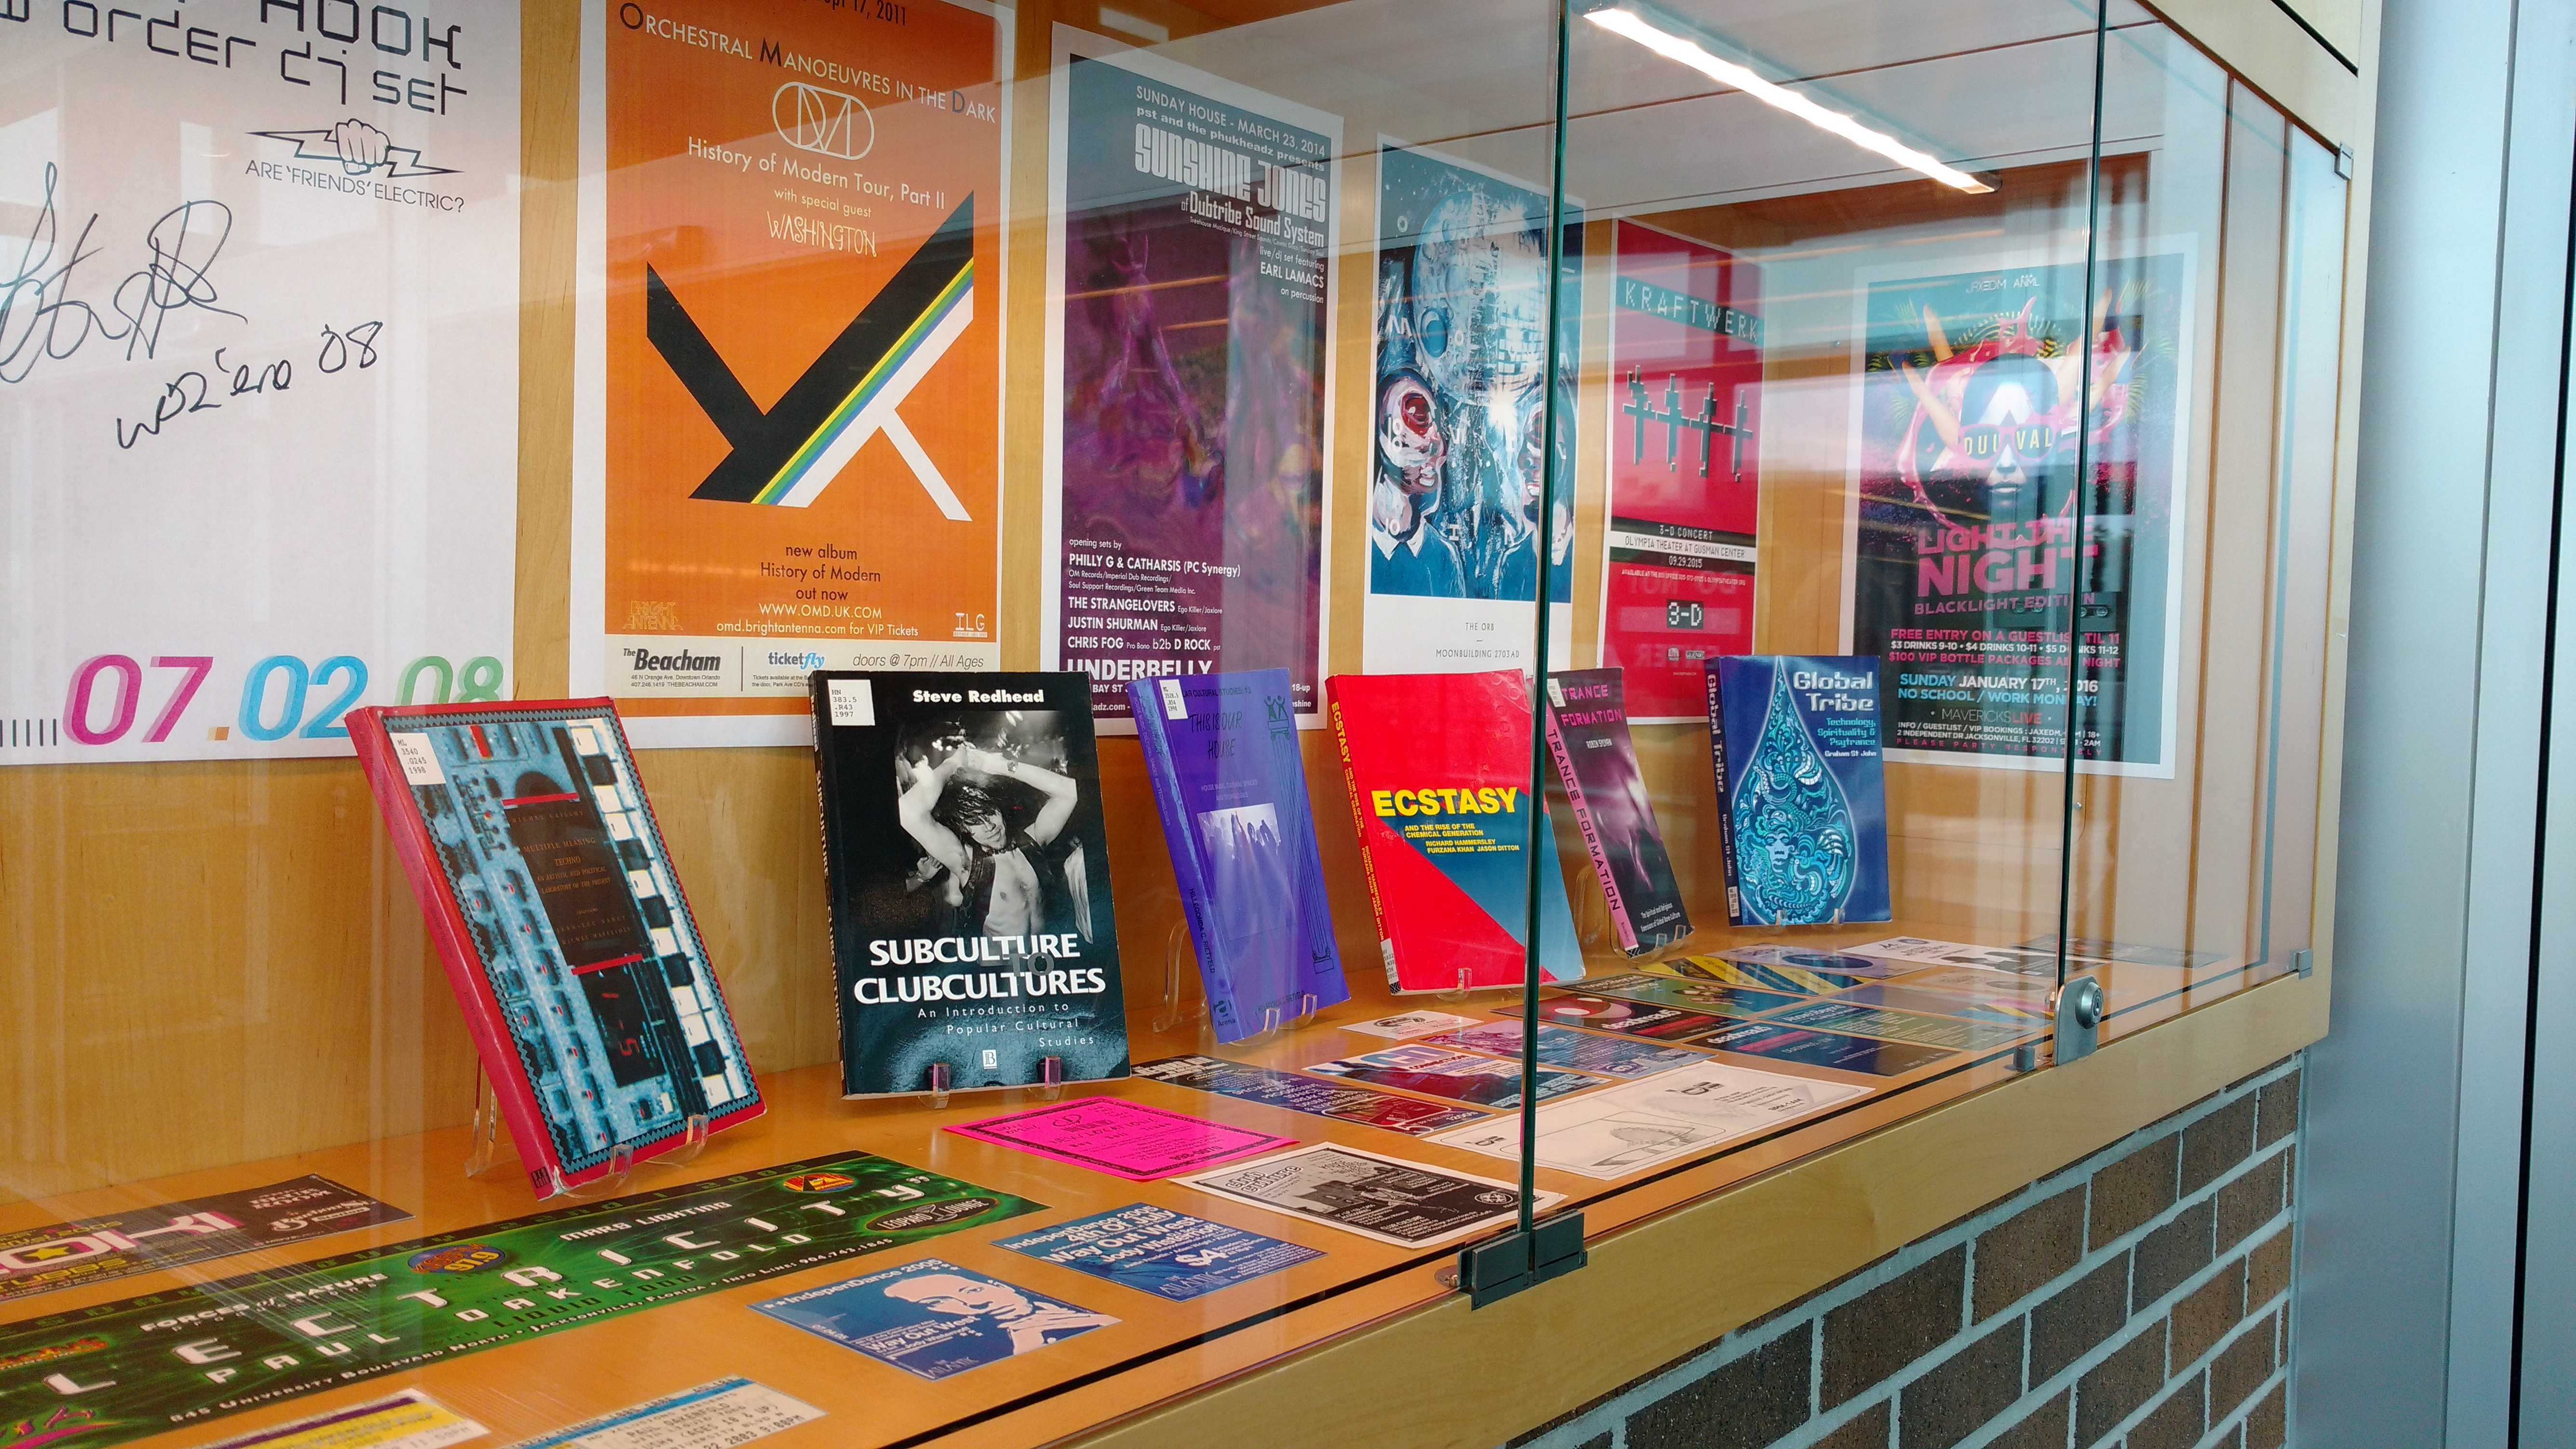 Library installation shows off Jacksonville's electronic dance music culture